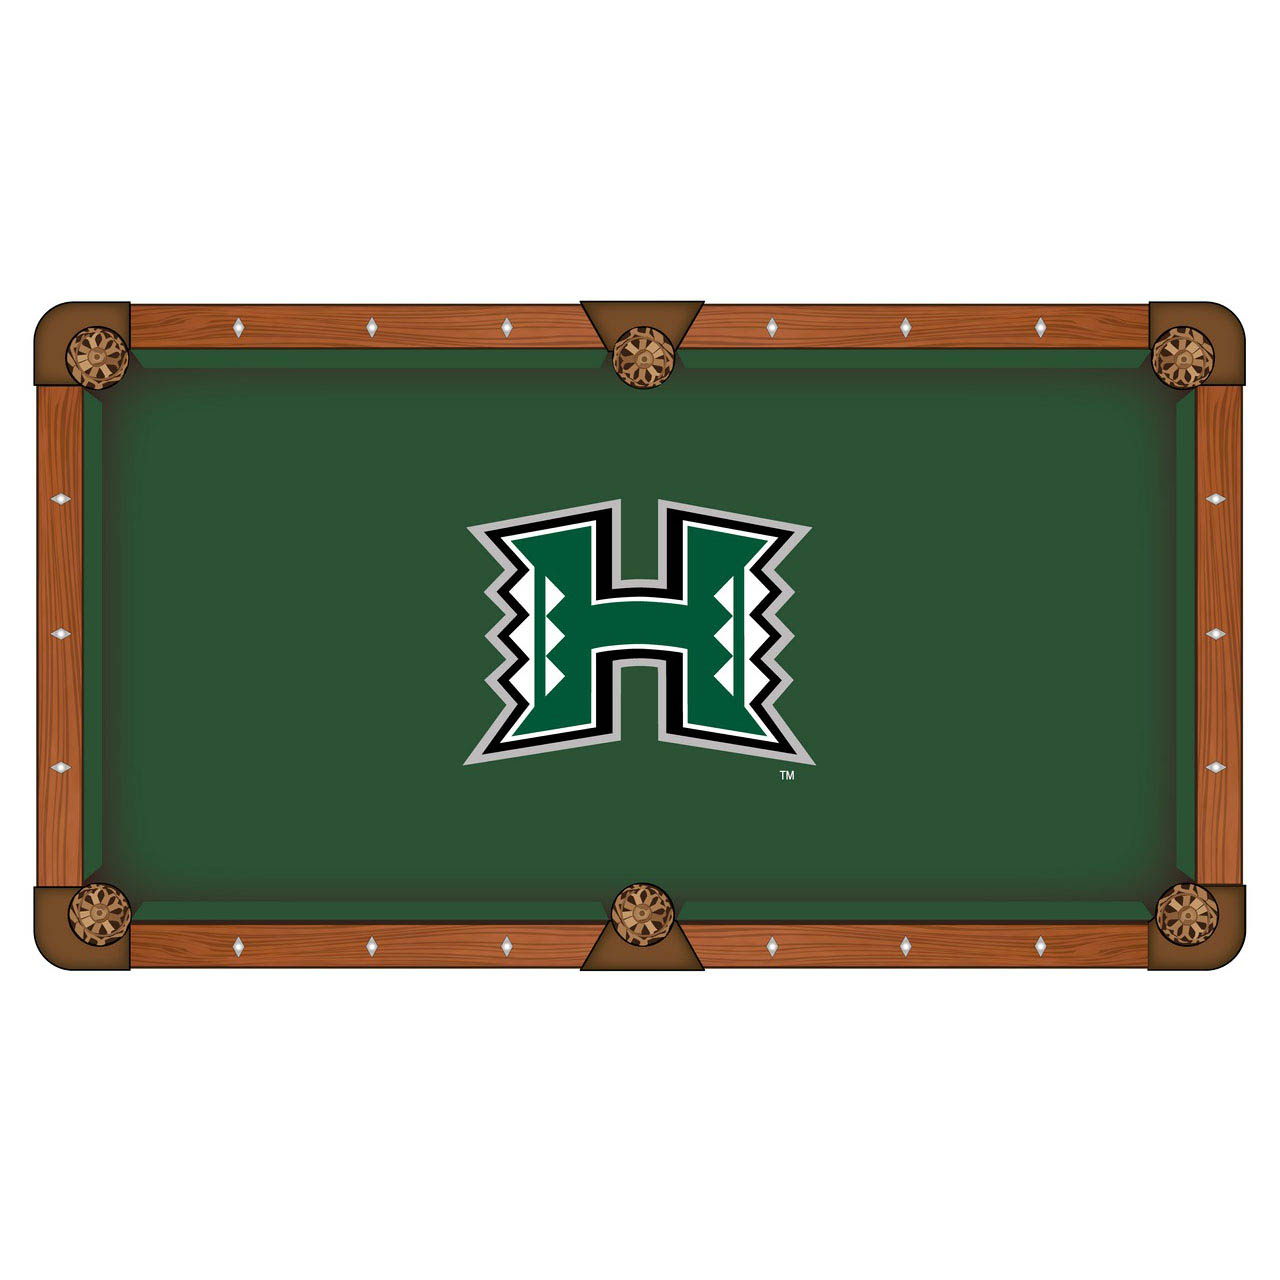 Superb-quality University Hawaii Pool Table Cloth Product Photo